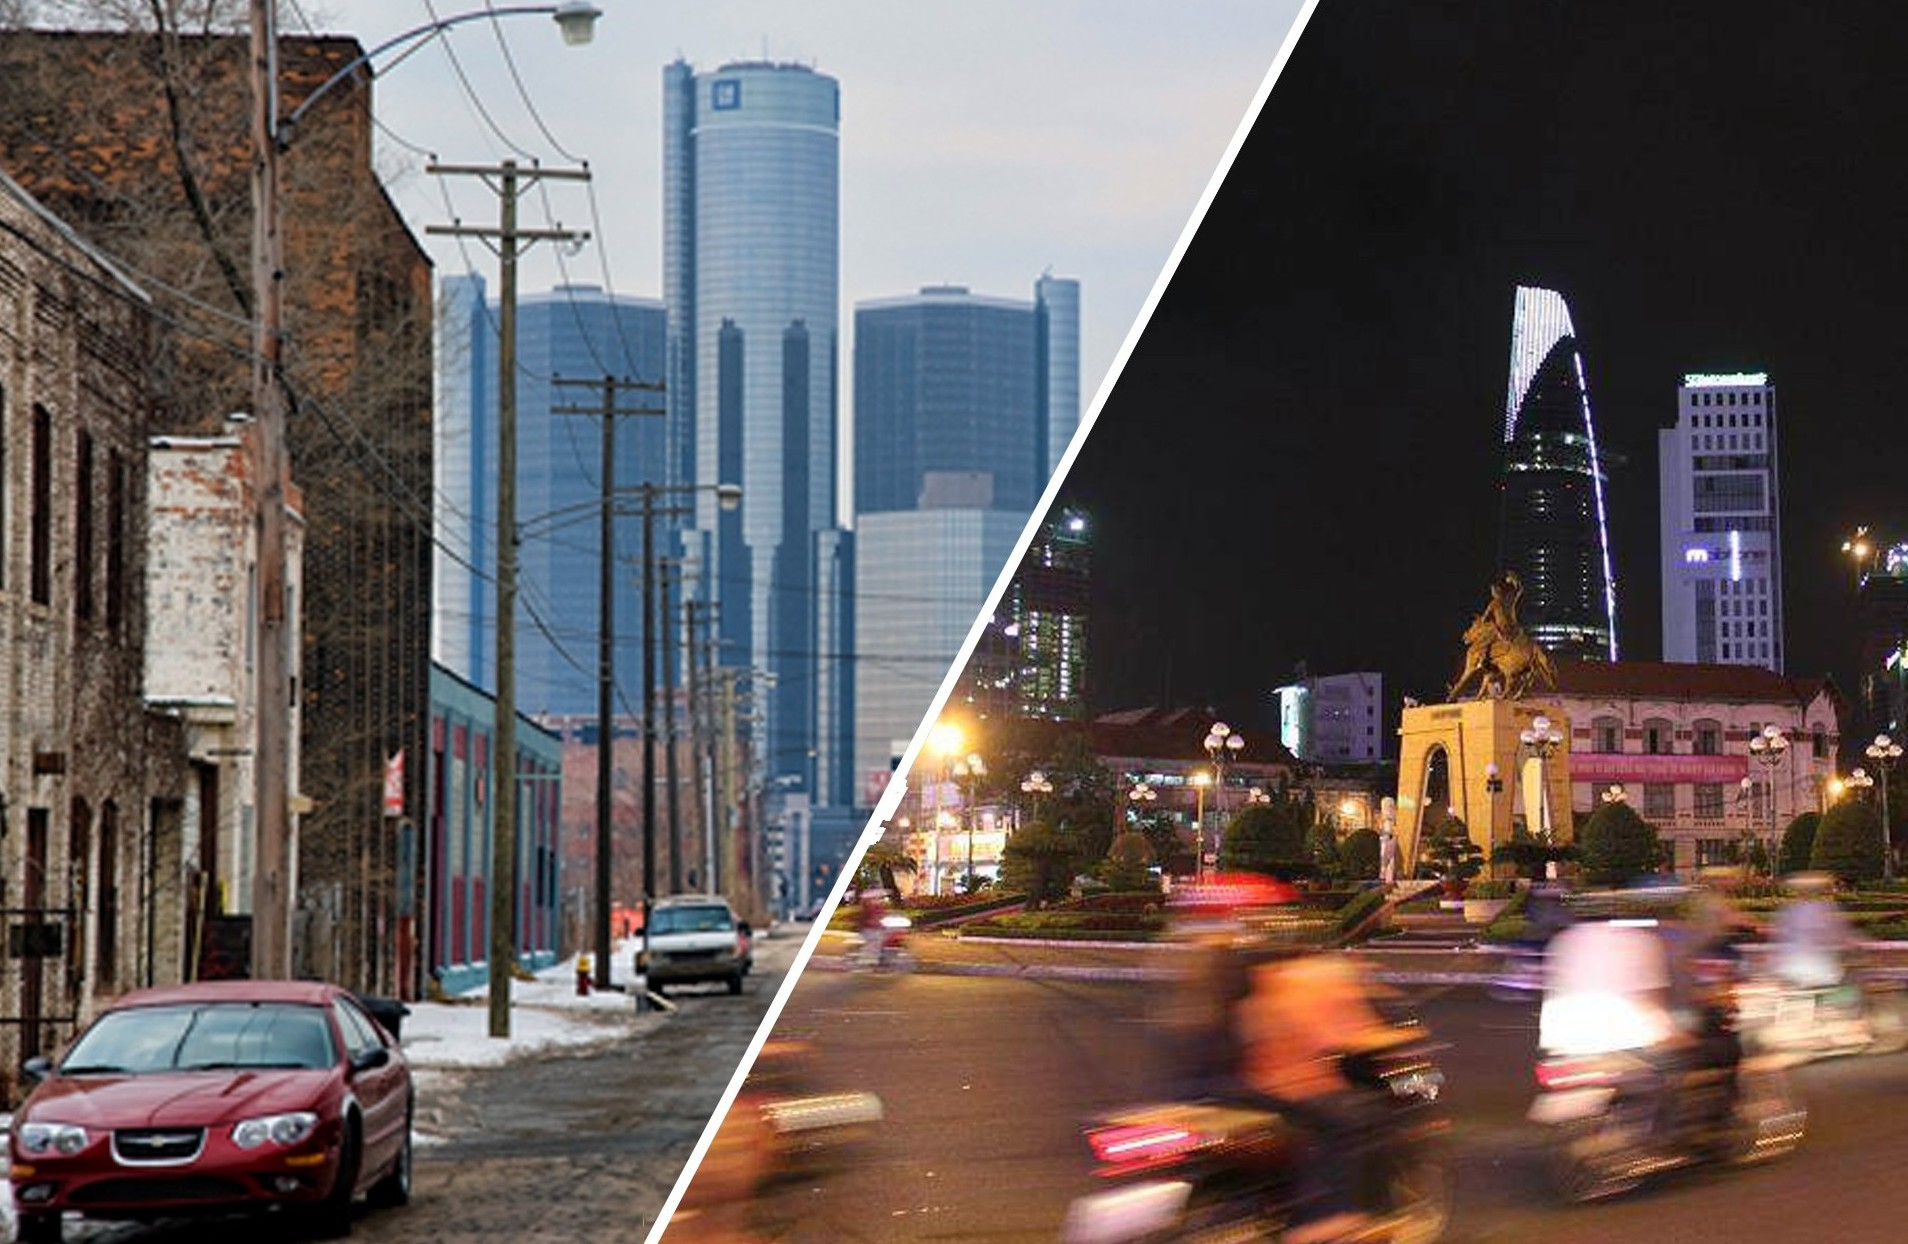 WHAT DO DETROIT AND SAIGON HAVE IN COMMON?